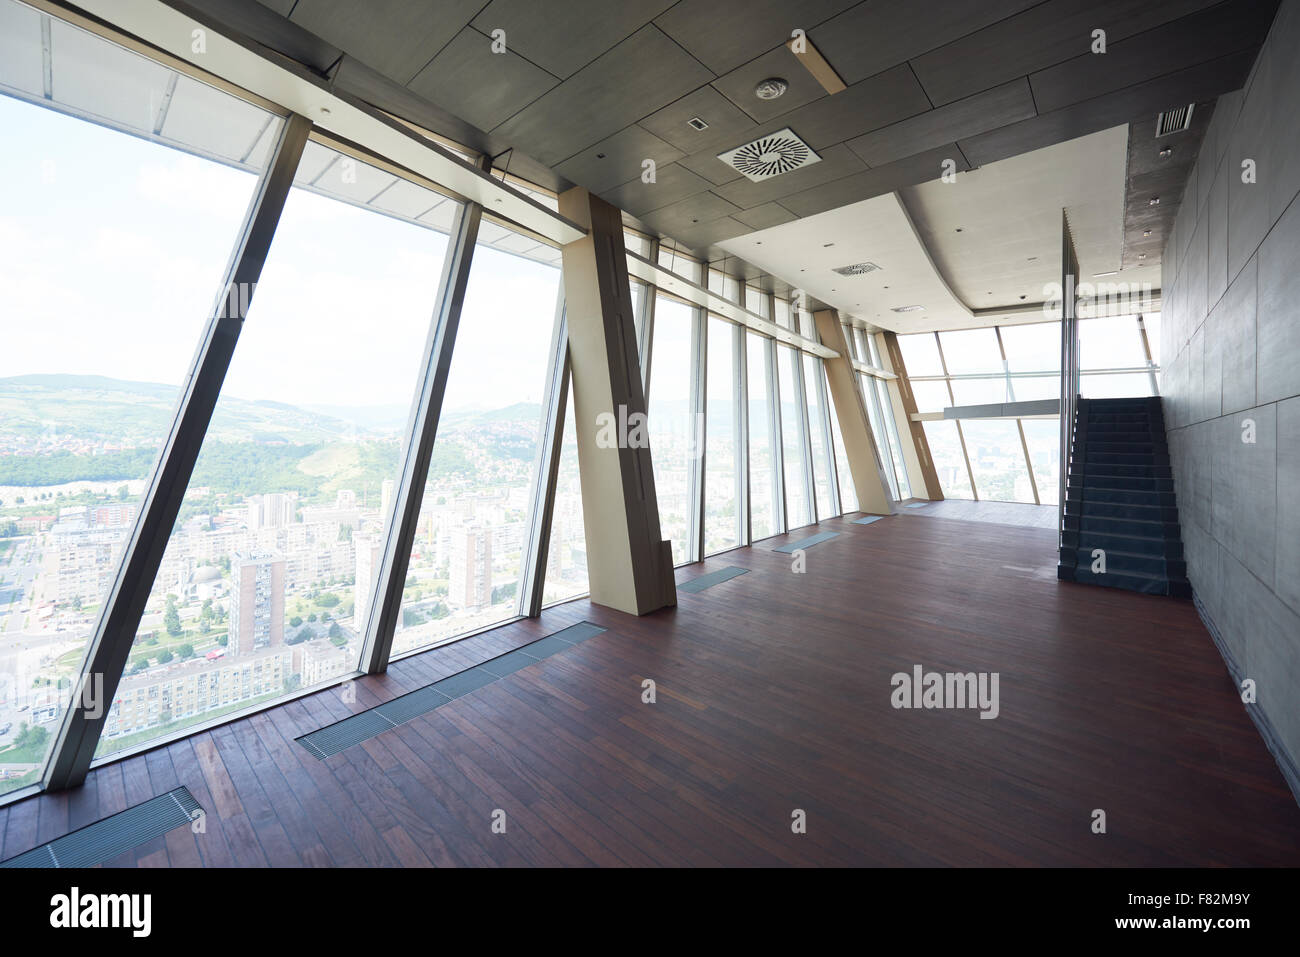 Empty living room with large windows can be as background stock - Empty Living Room With Large Windows Can Be As Background Stock Stock Photo Modern Bright Download